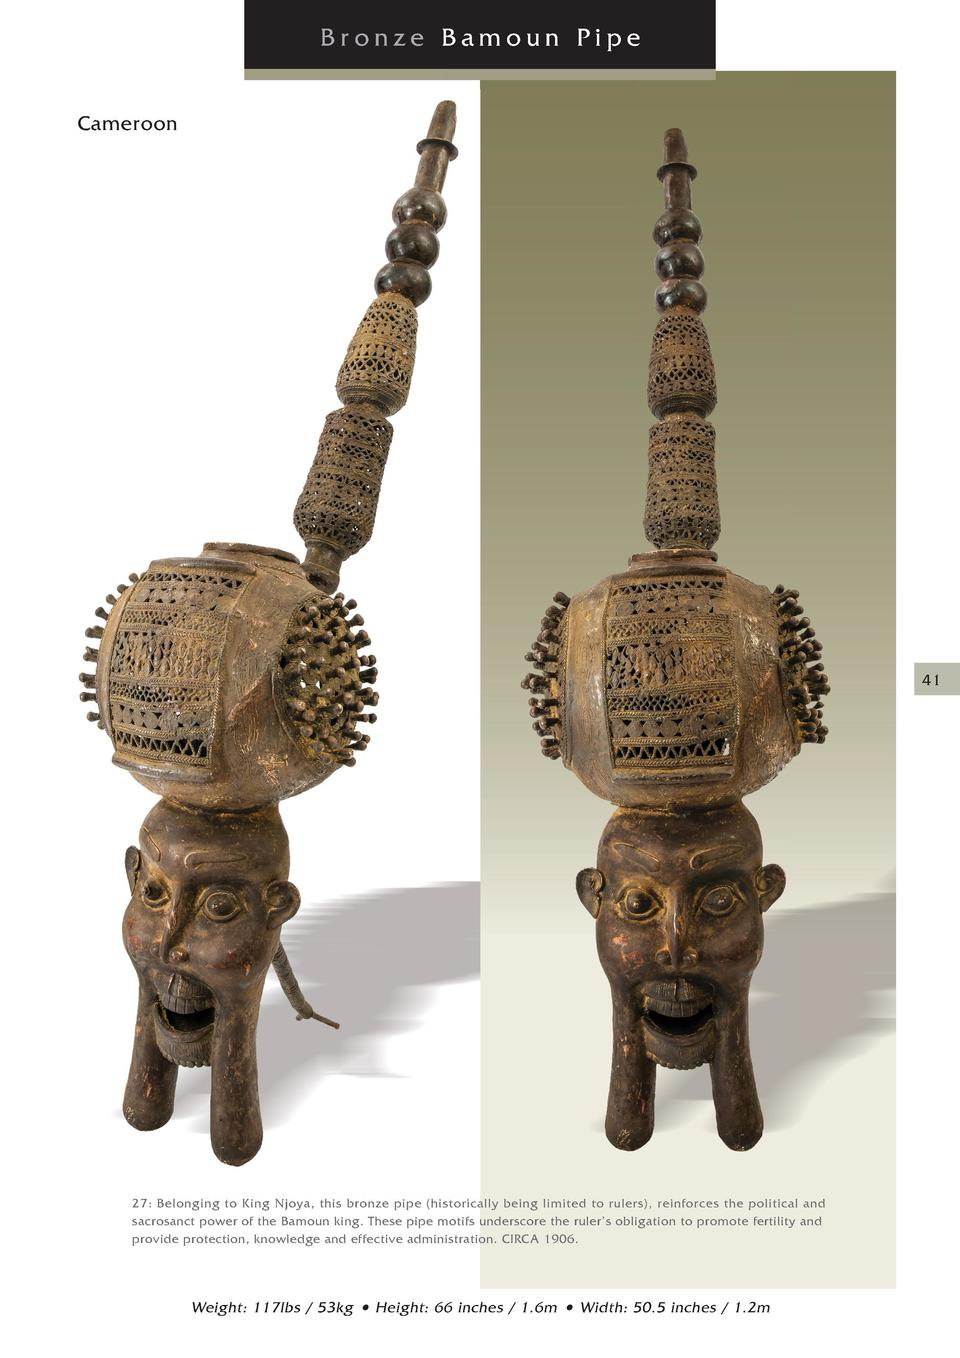 Bronze Bamoun Pipe Cameroon Cameroon  41  27  Belonging to King Njoya, this bronze pipe  historically being limited to rul...